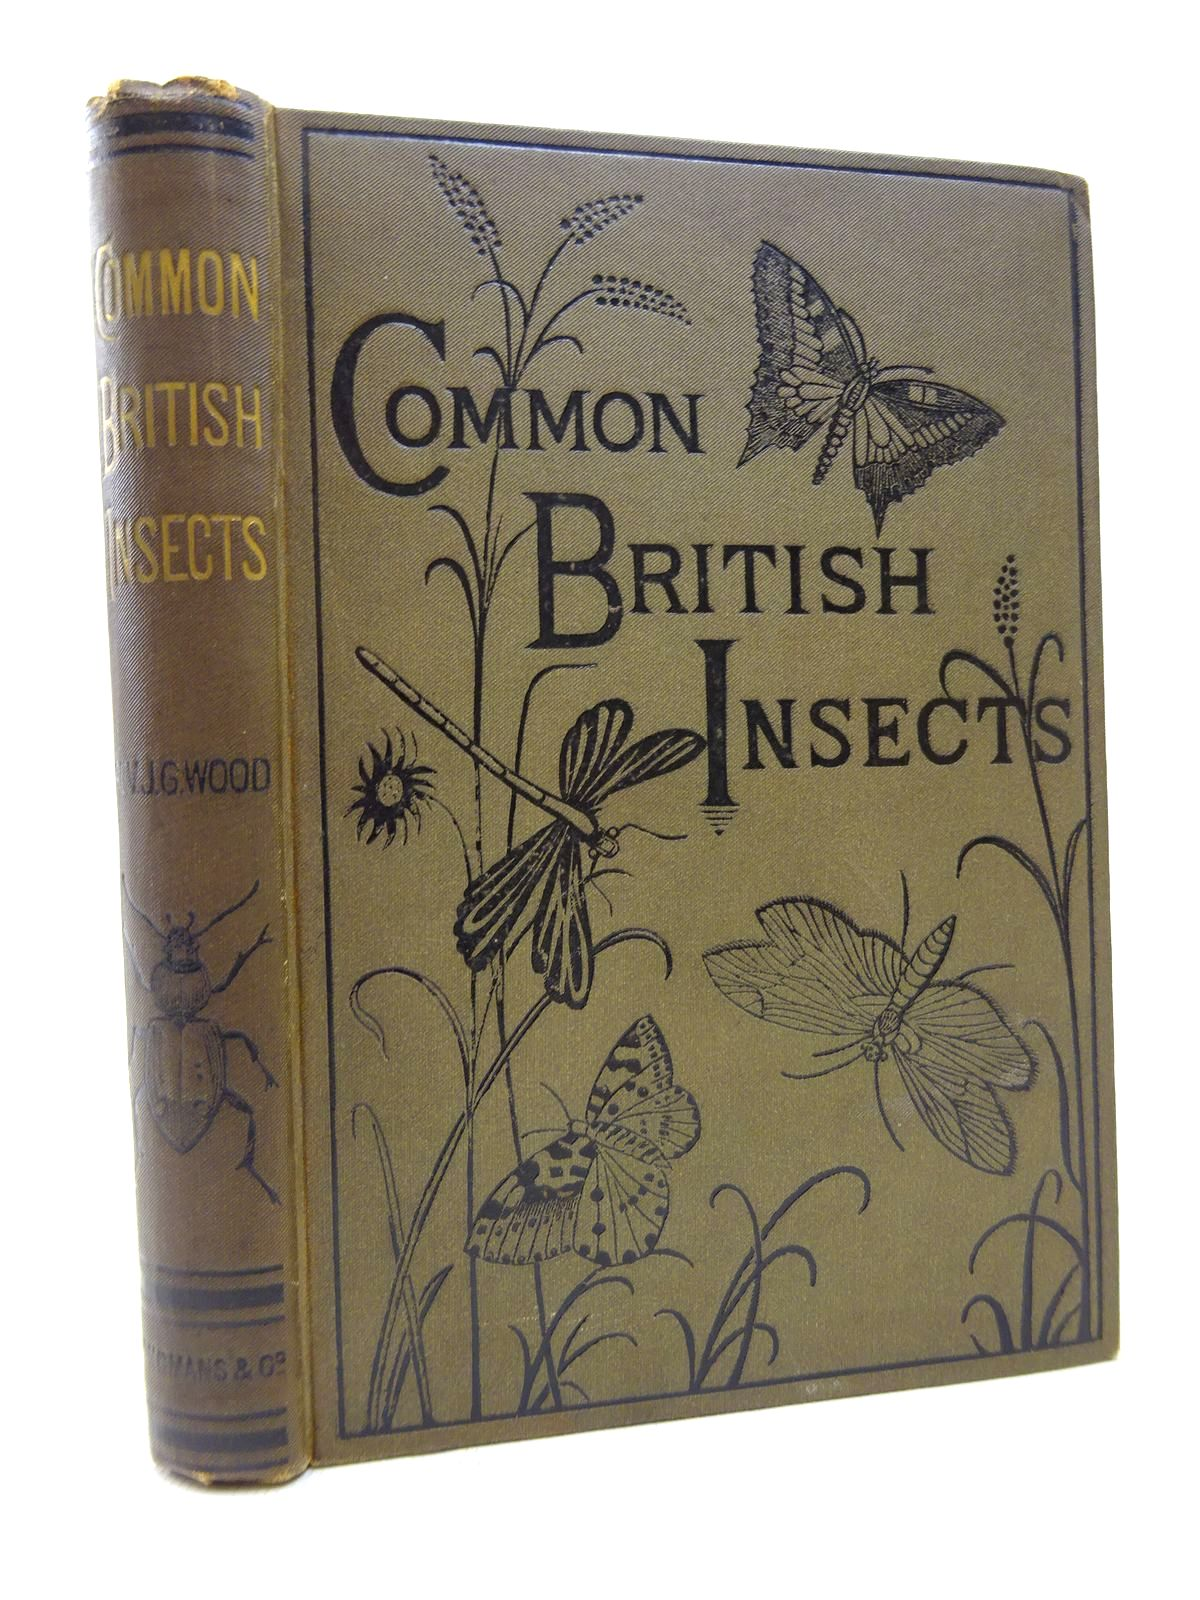 Photo of COMMON BRITISH INSECTS SELECTED FROM THE TYPICAL BEETLES, MOTHS AND BUTTERFLIES OF GREAT BRITAIN written by Wood, J.G. illustrated by Smith, E.A. published by Longmans, Green & Co. (STOCK CODE: 1815811)  for sale by Stella & Rose's Books